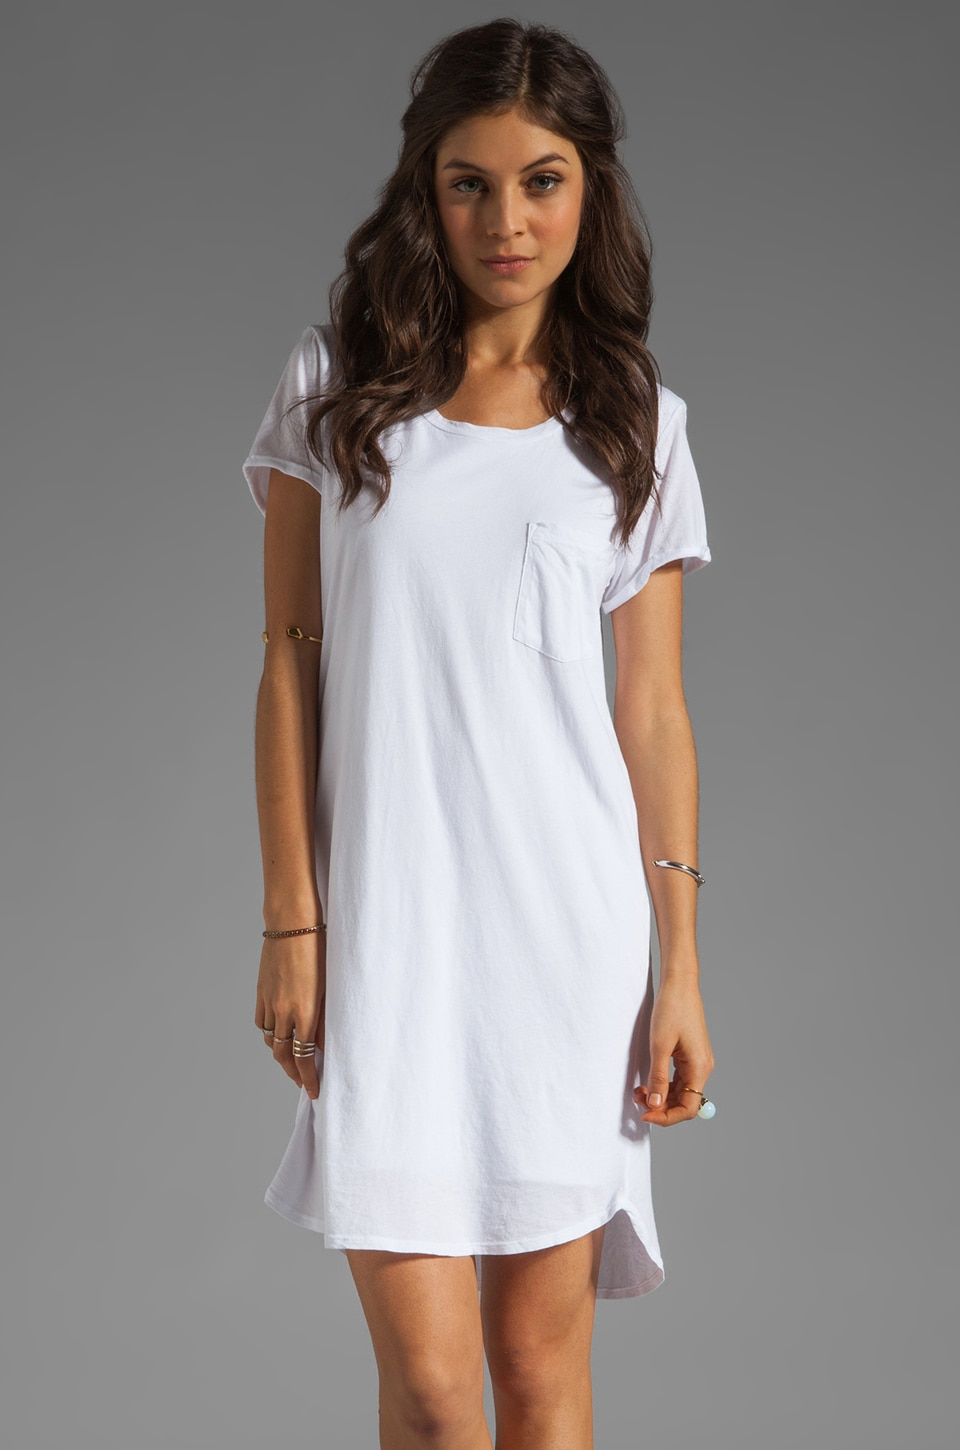 Velvet by Graham & Spencer Dasha Sheer Jersey T Shirt Dress in White